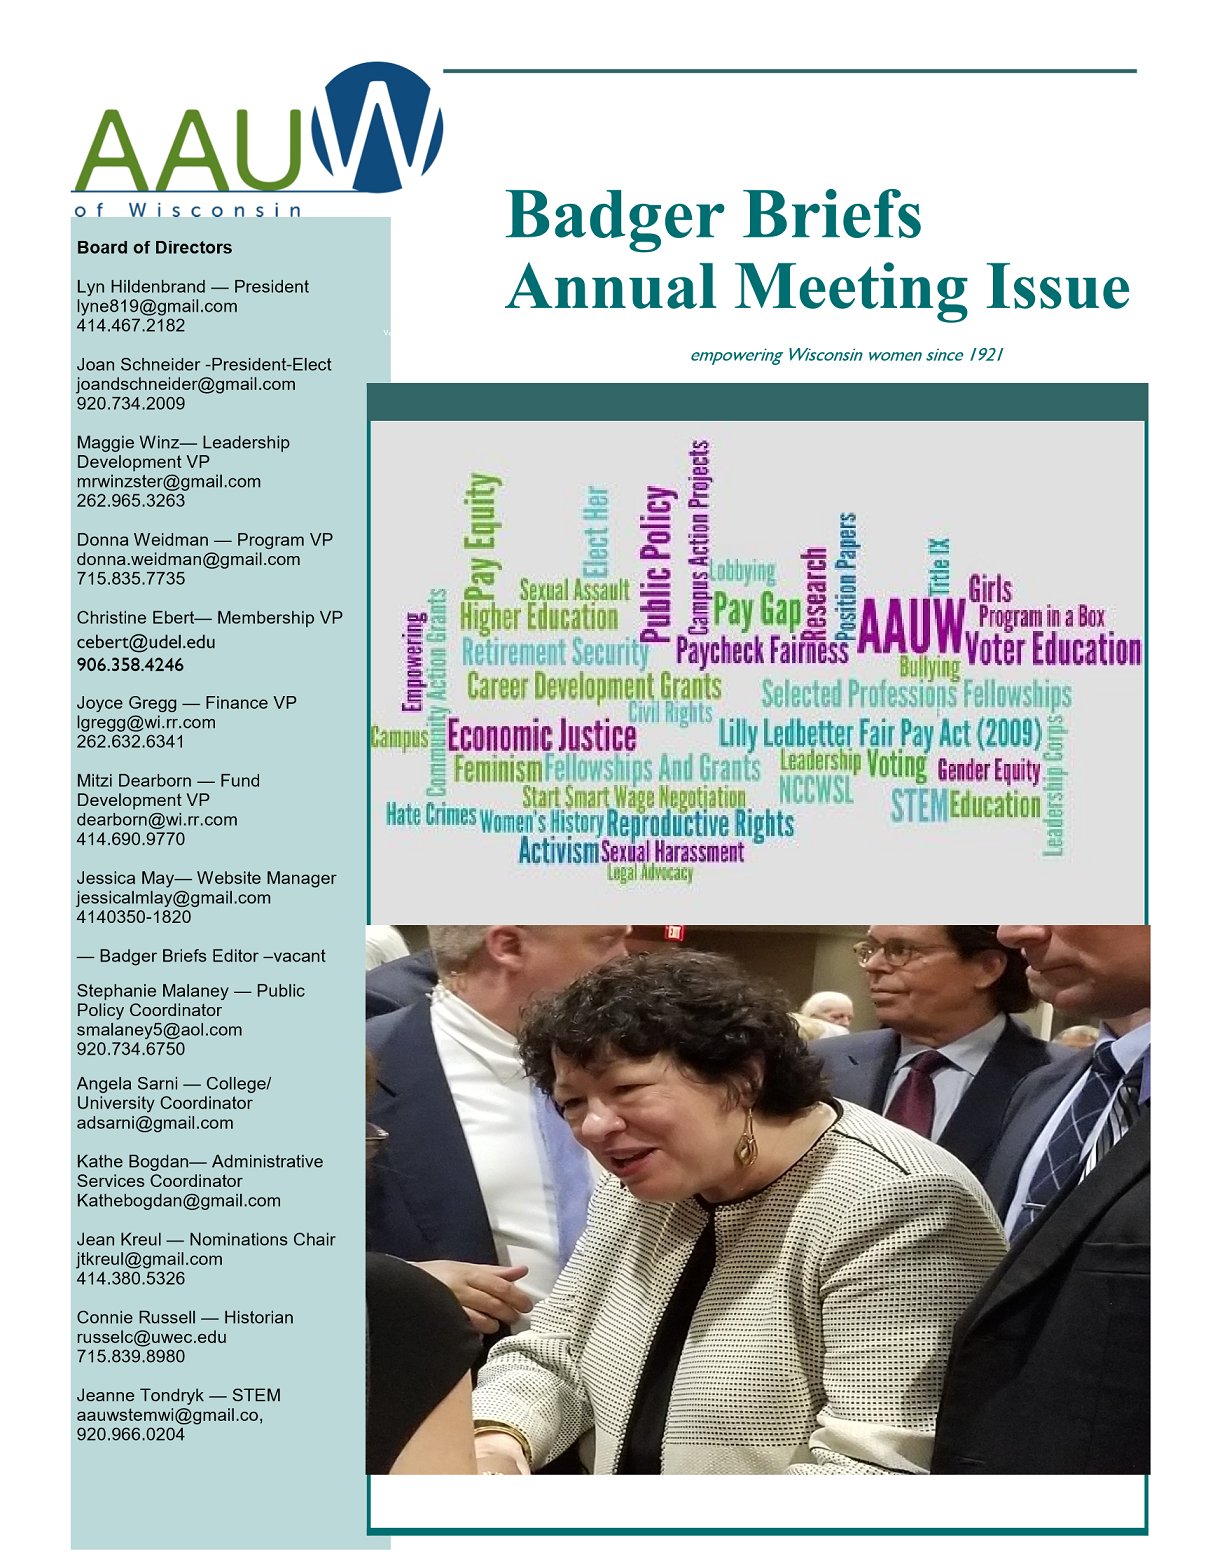 2020 Annual Meeting Issue of Badger Briefs